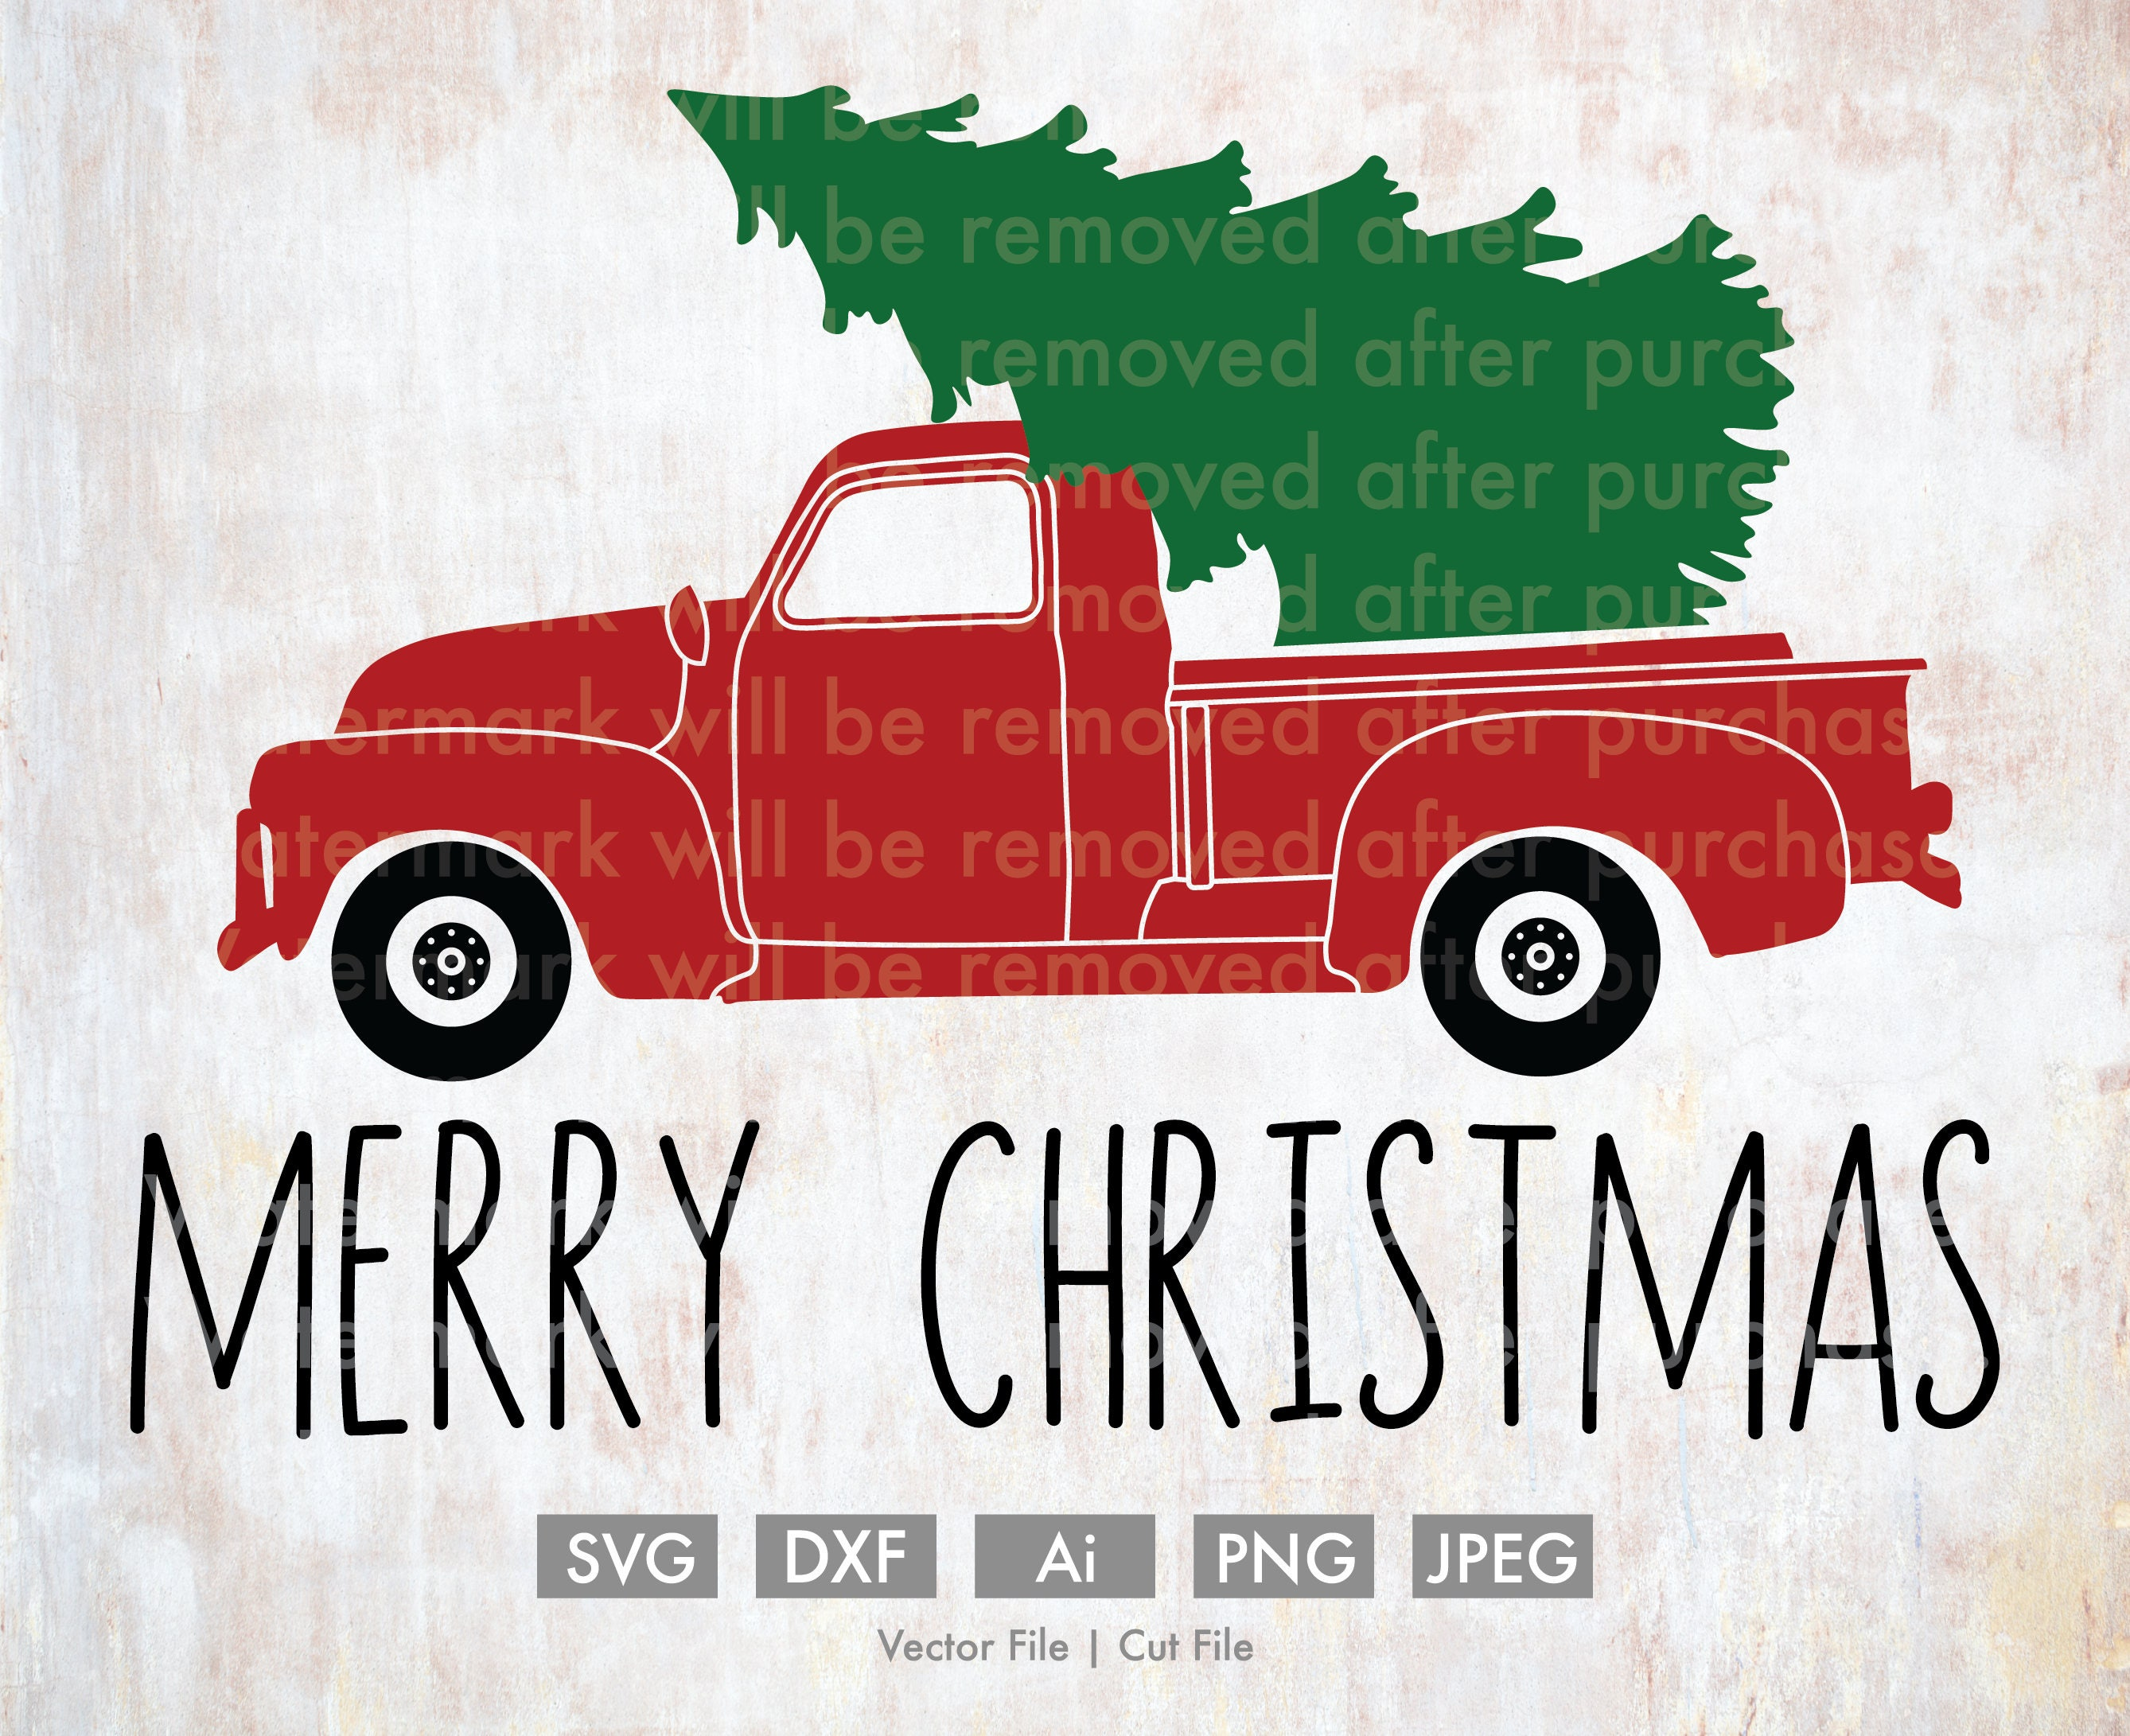 Merry Christmas Old Truck With Tree Cut File Vector